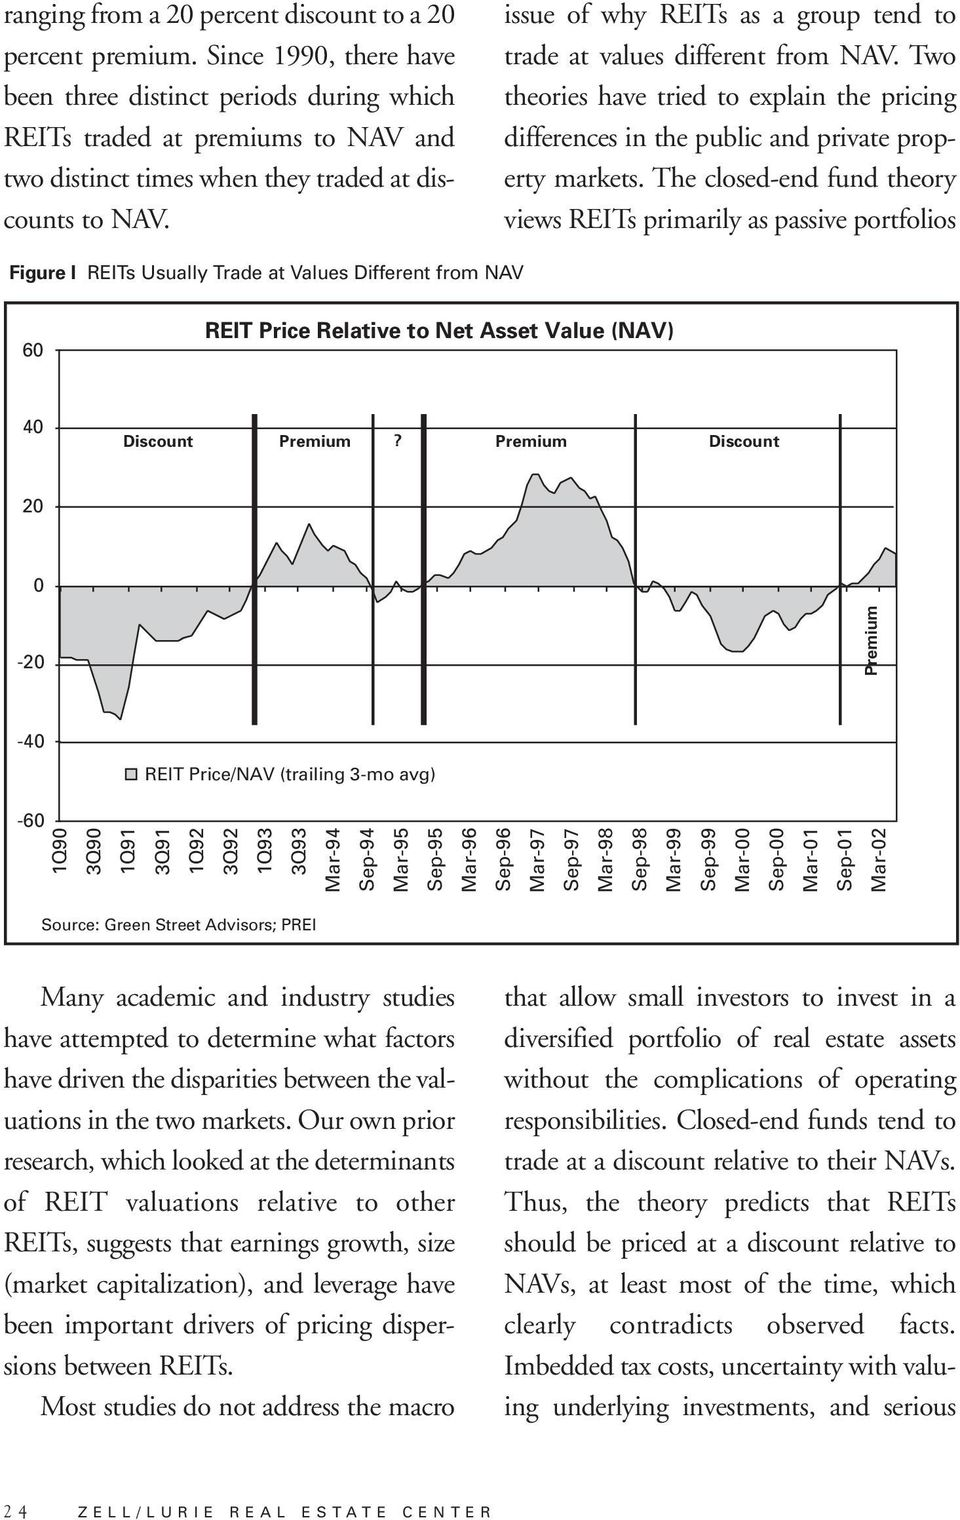 issue of why REITs as a group tend to trade at values different from NAV. Two theories have tried to explain the pricing differences in the public and private property markets.